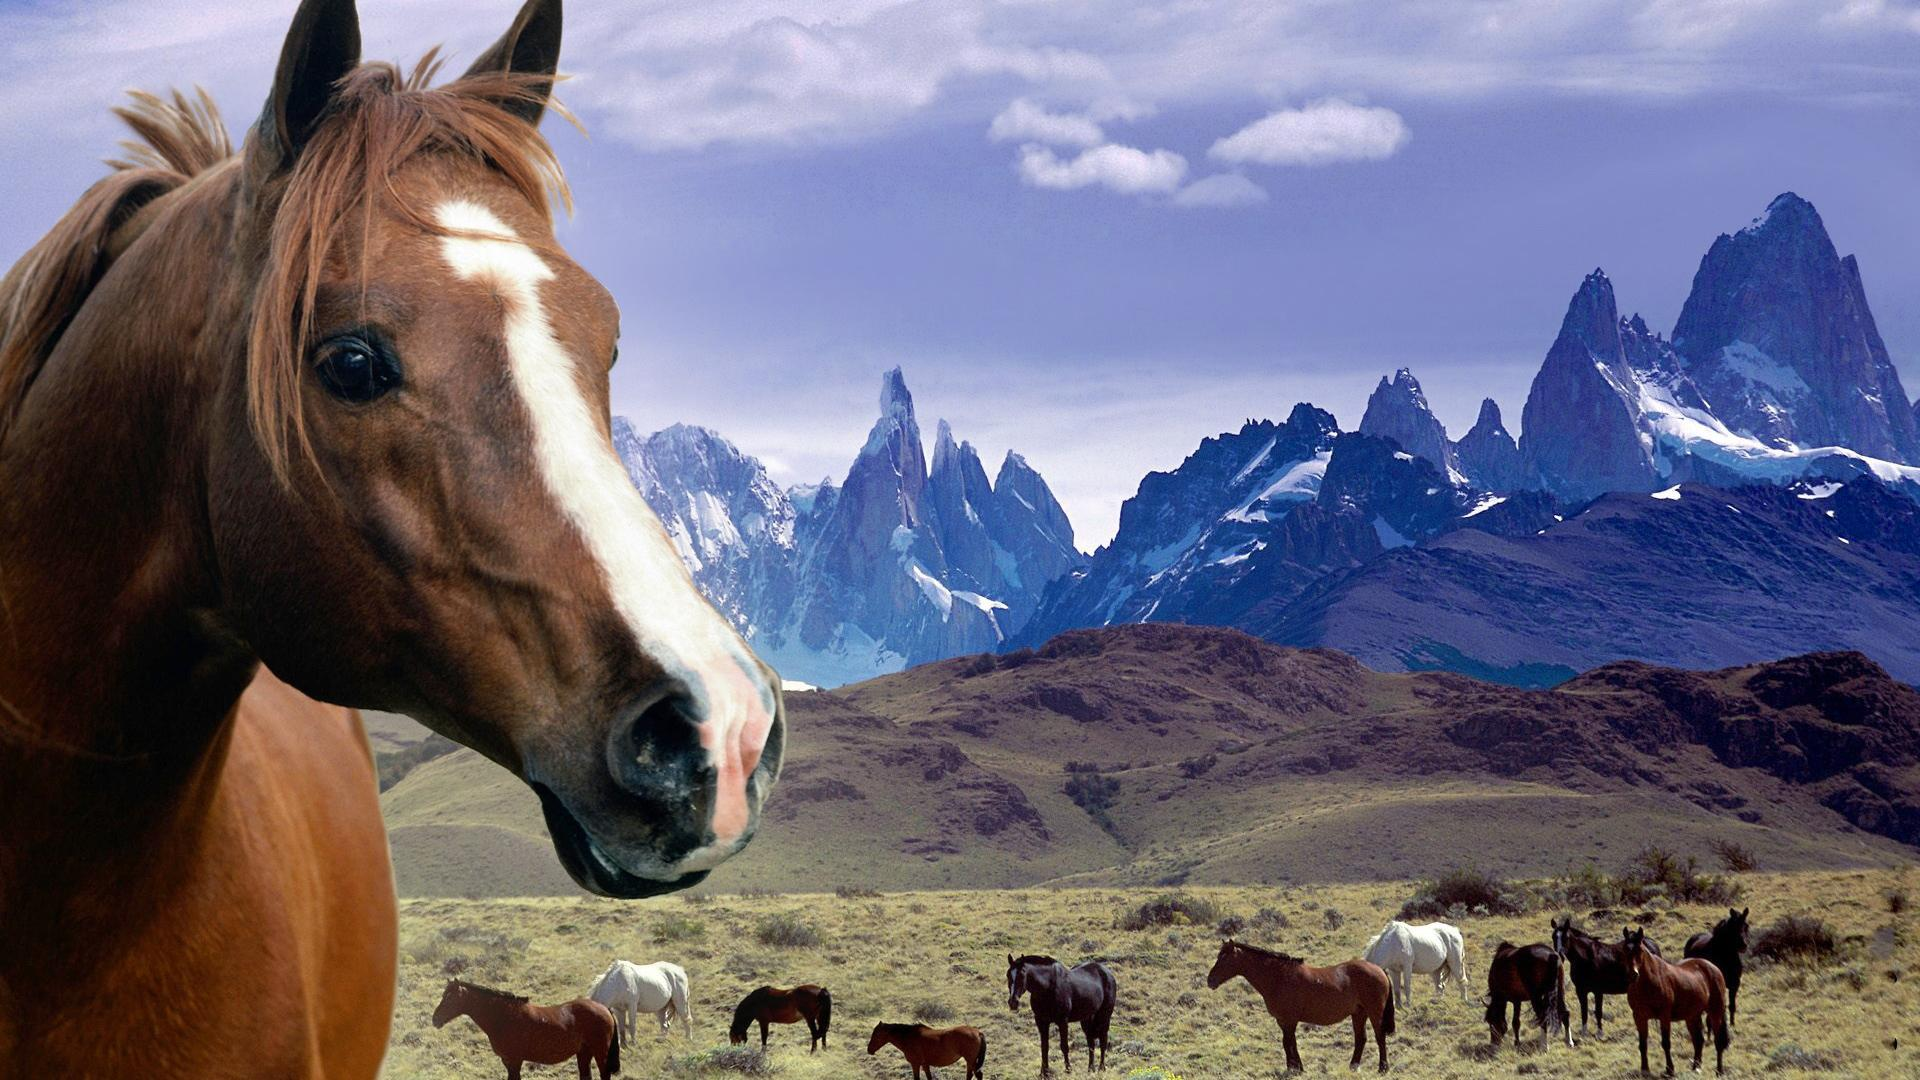 Grassland Horses Desktop Backgrounds Widescreen and HD background